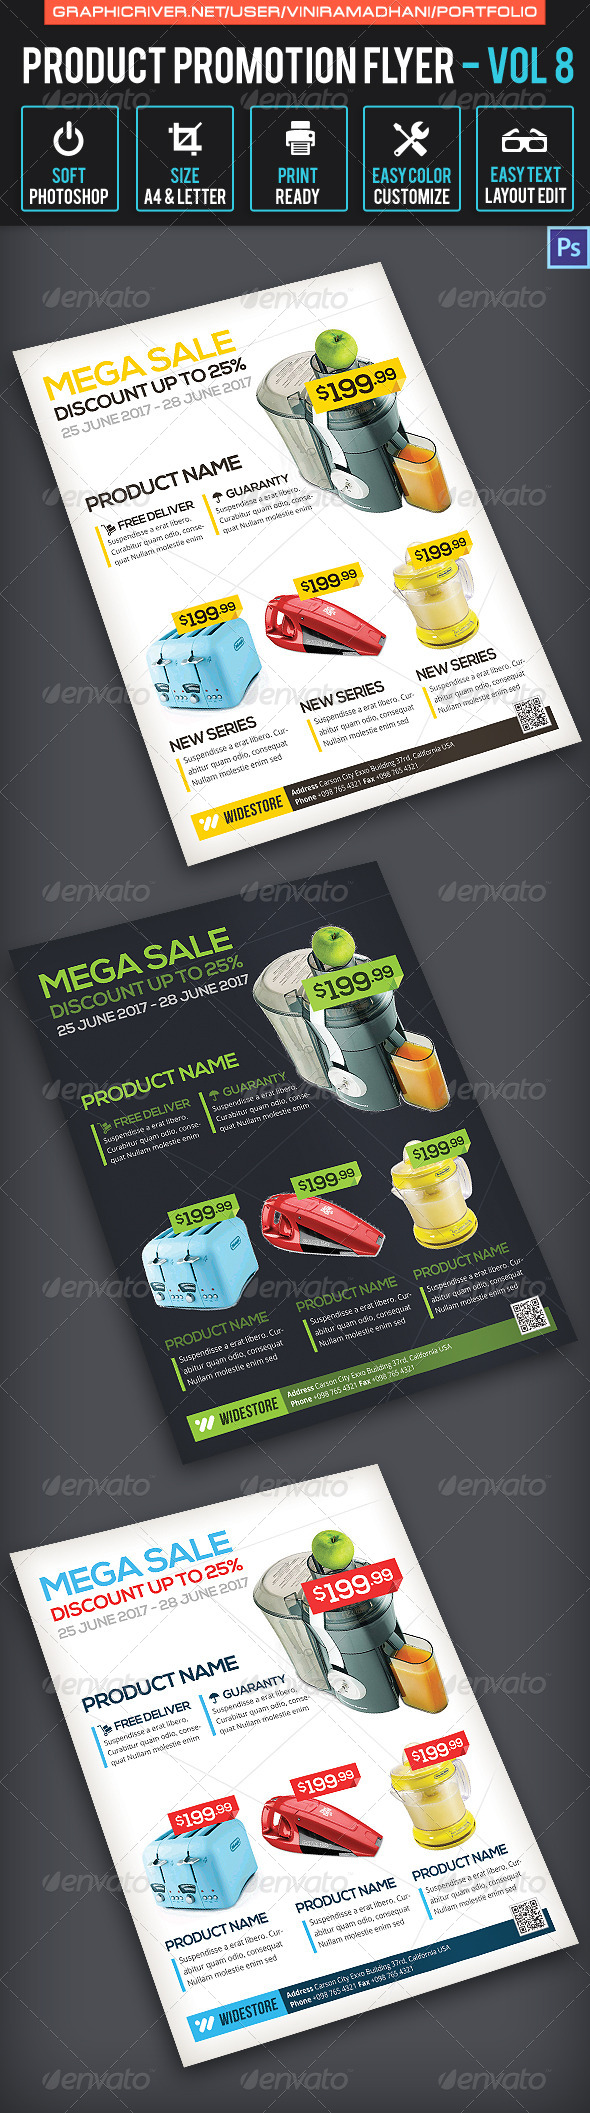 Product Promotion Flyer | Volume 8 - Commerce Flyers